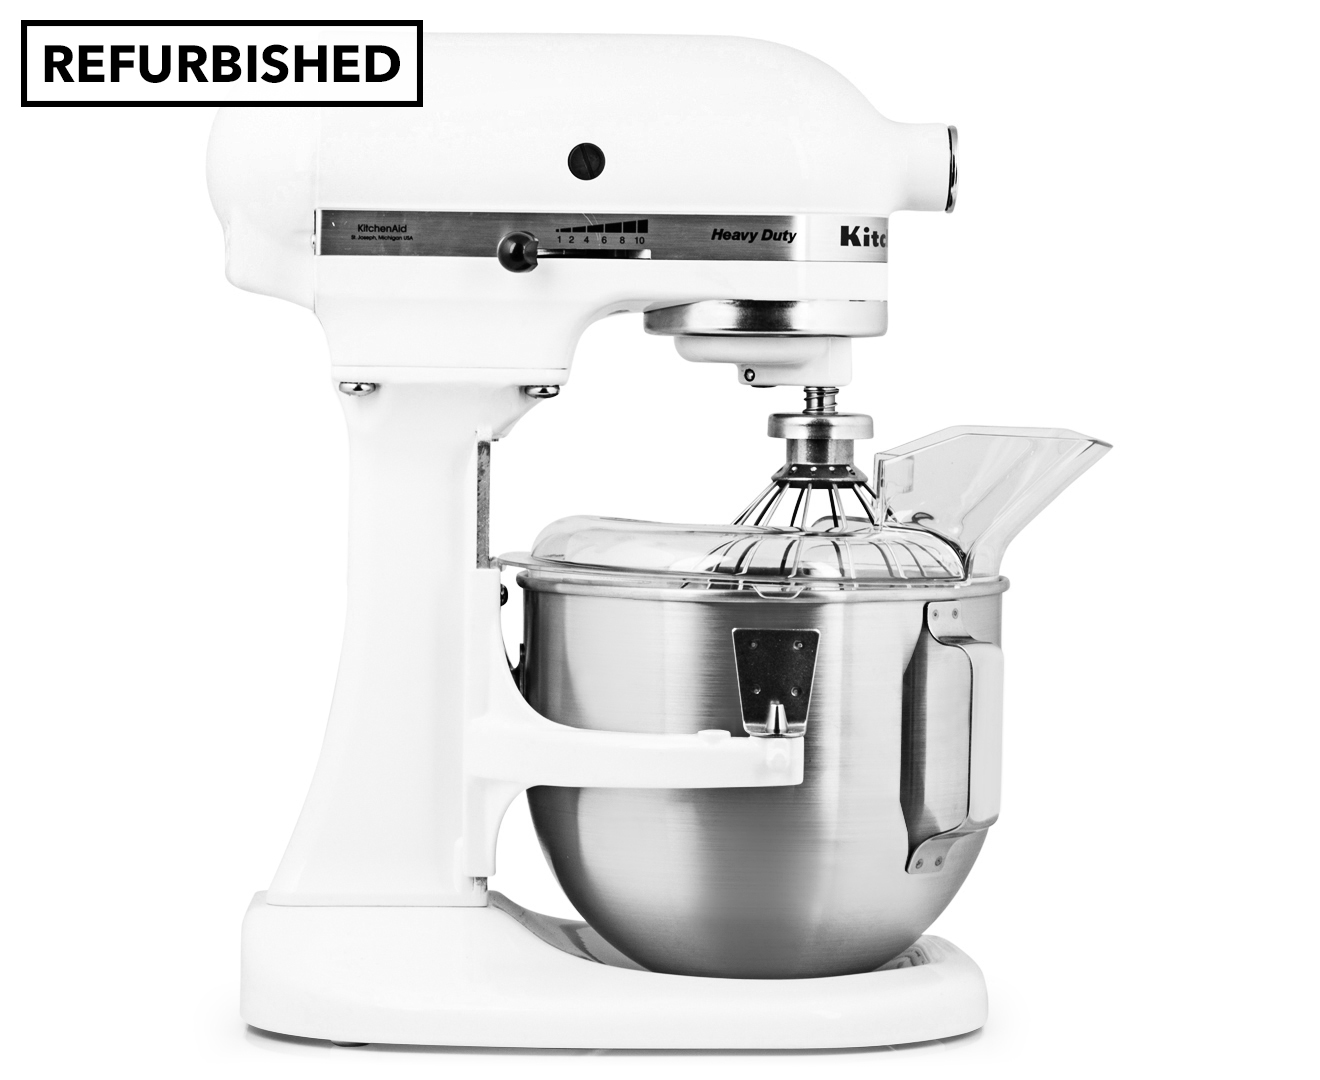 Kitchenaid K5ss Bowl Lift Stand Mixer Refurb White